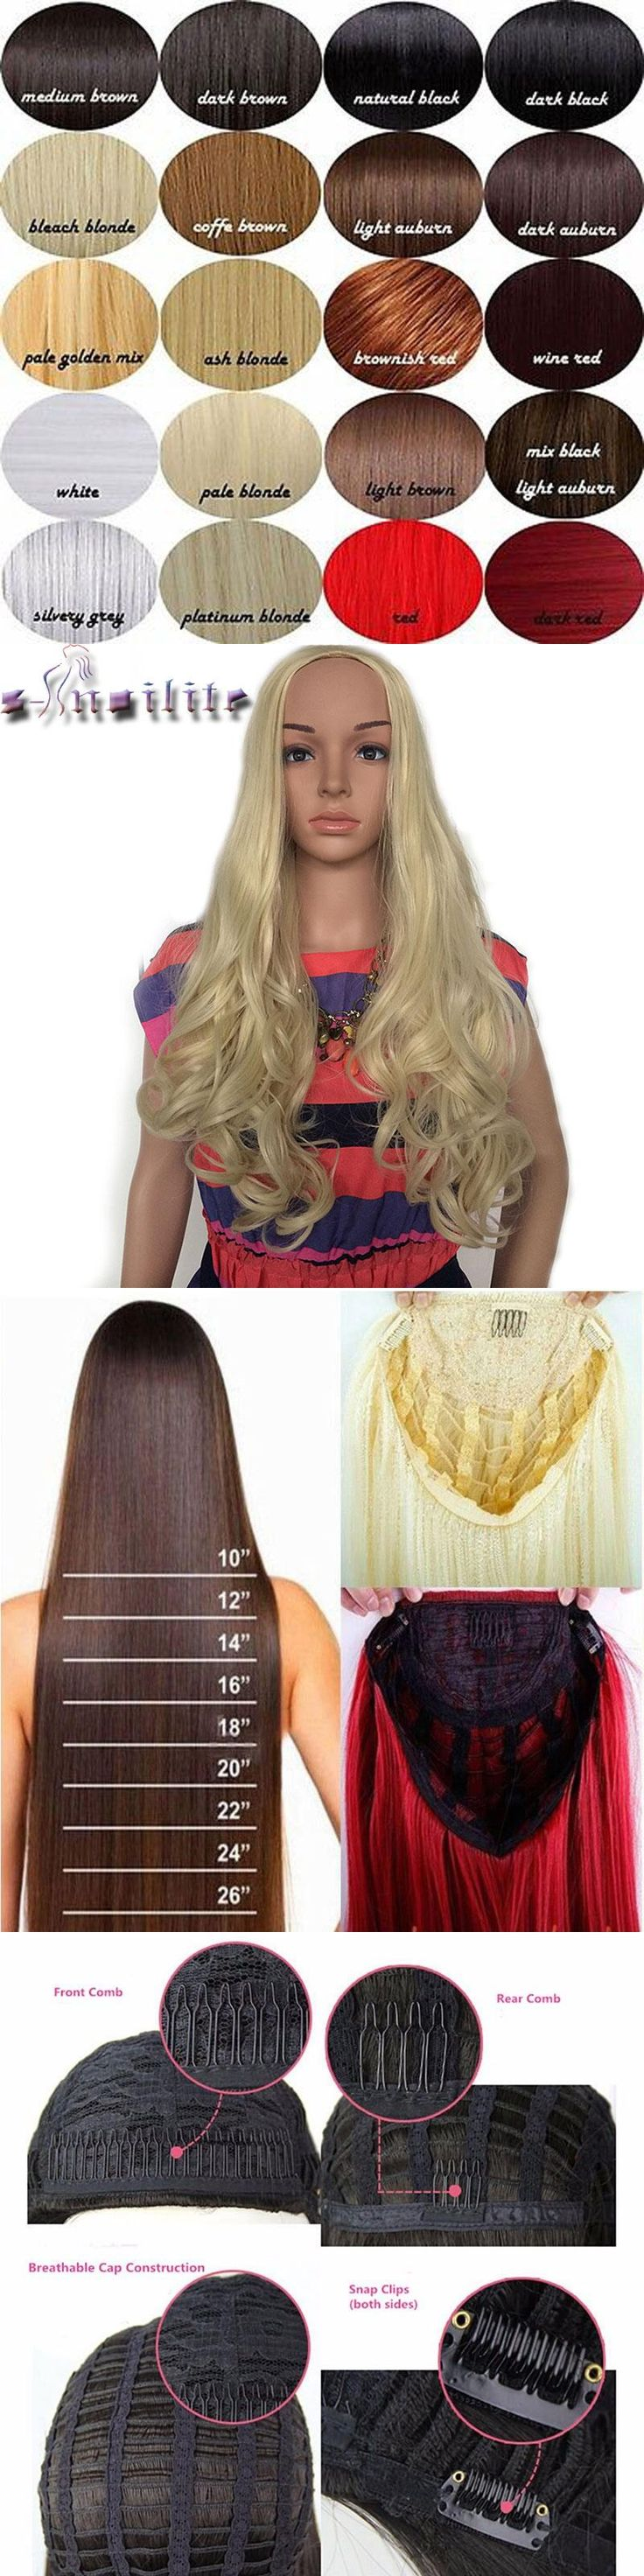 S-noilite 63.5cm Long Curly Women Half Wig Synthetic Hair Vogue Ladies 3/4 Full Wigs Soft for human